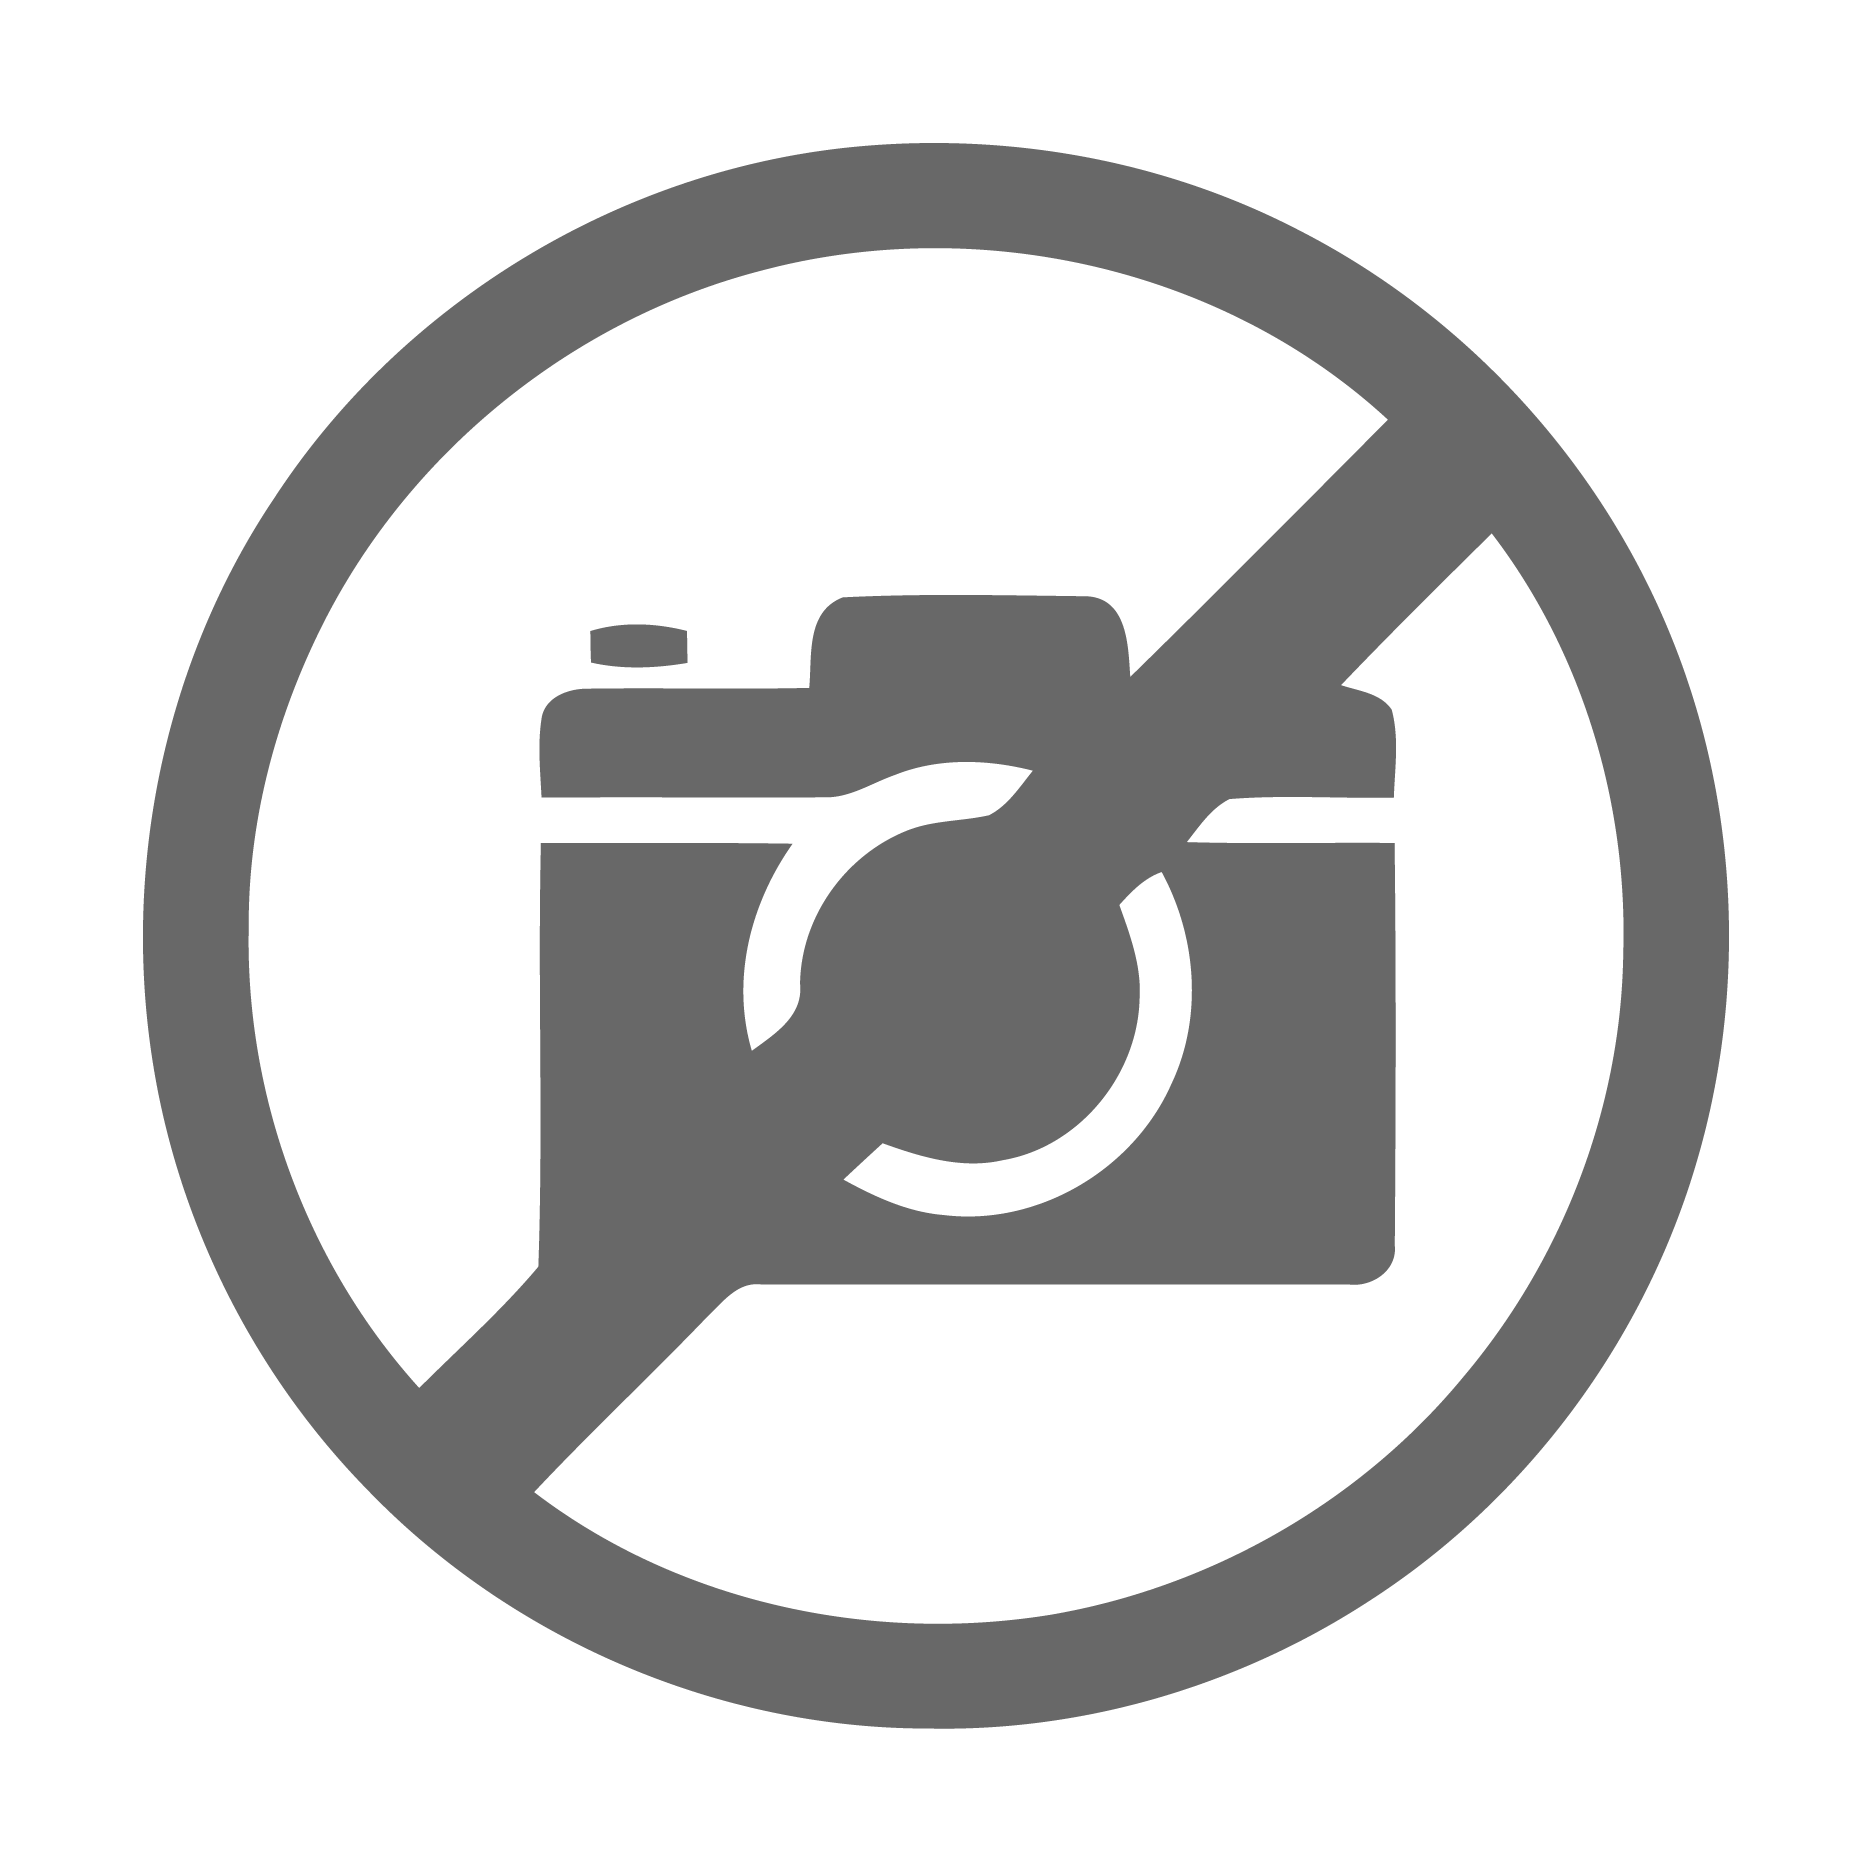 no-image-icon_191.png